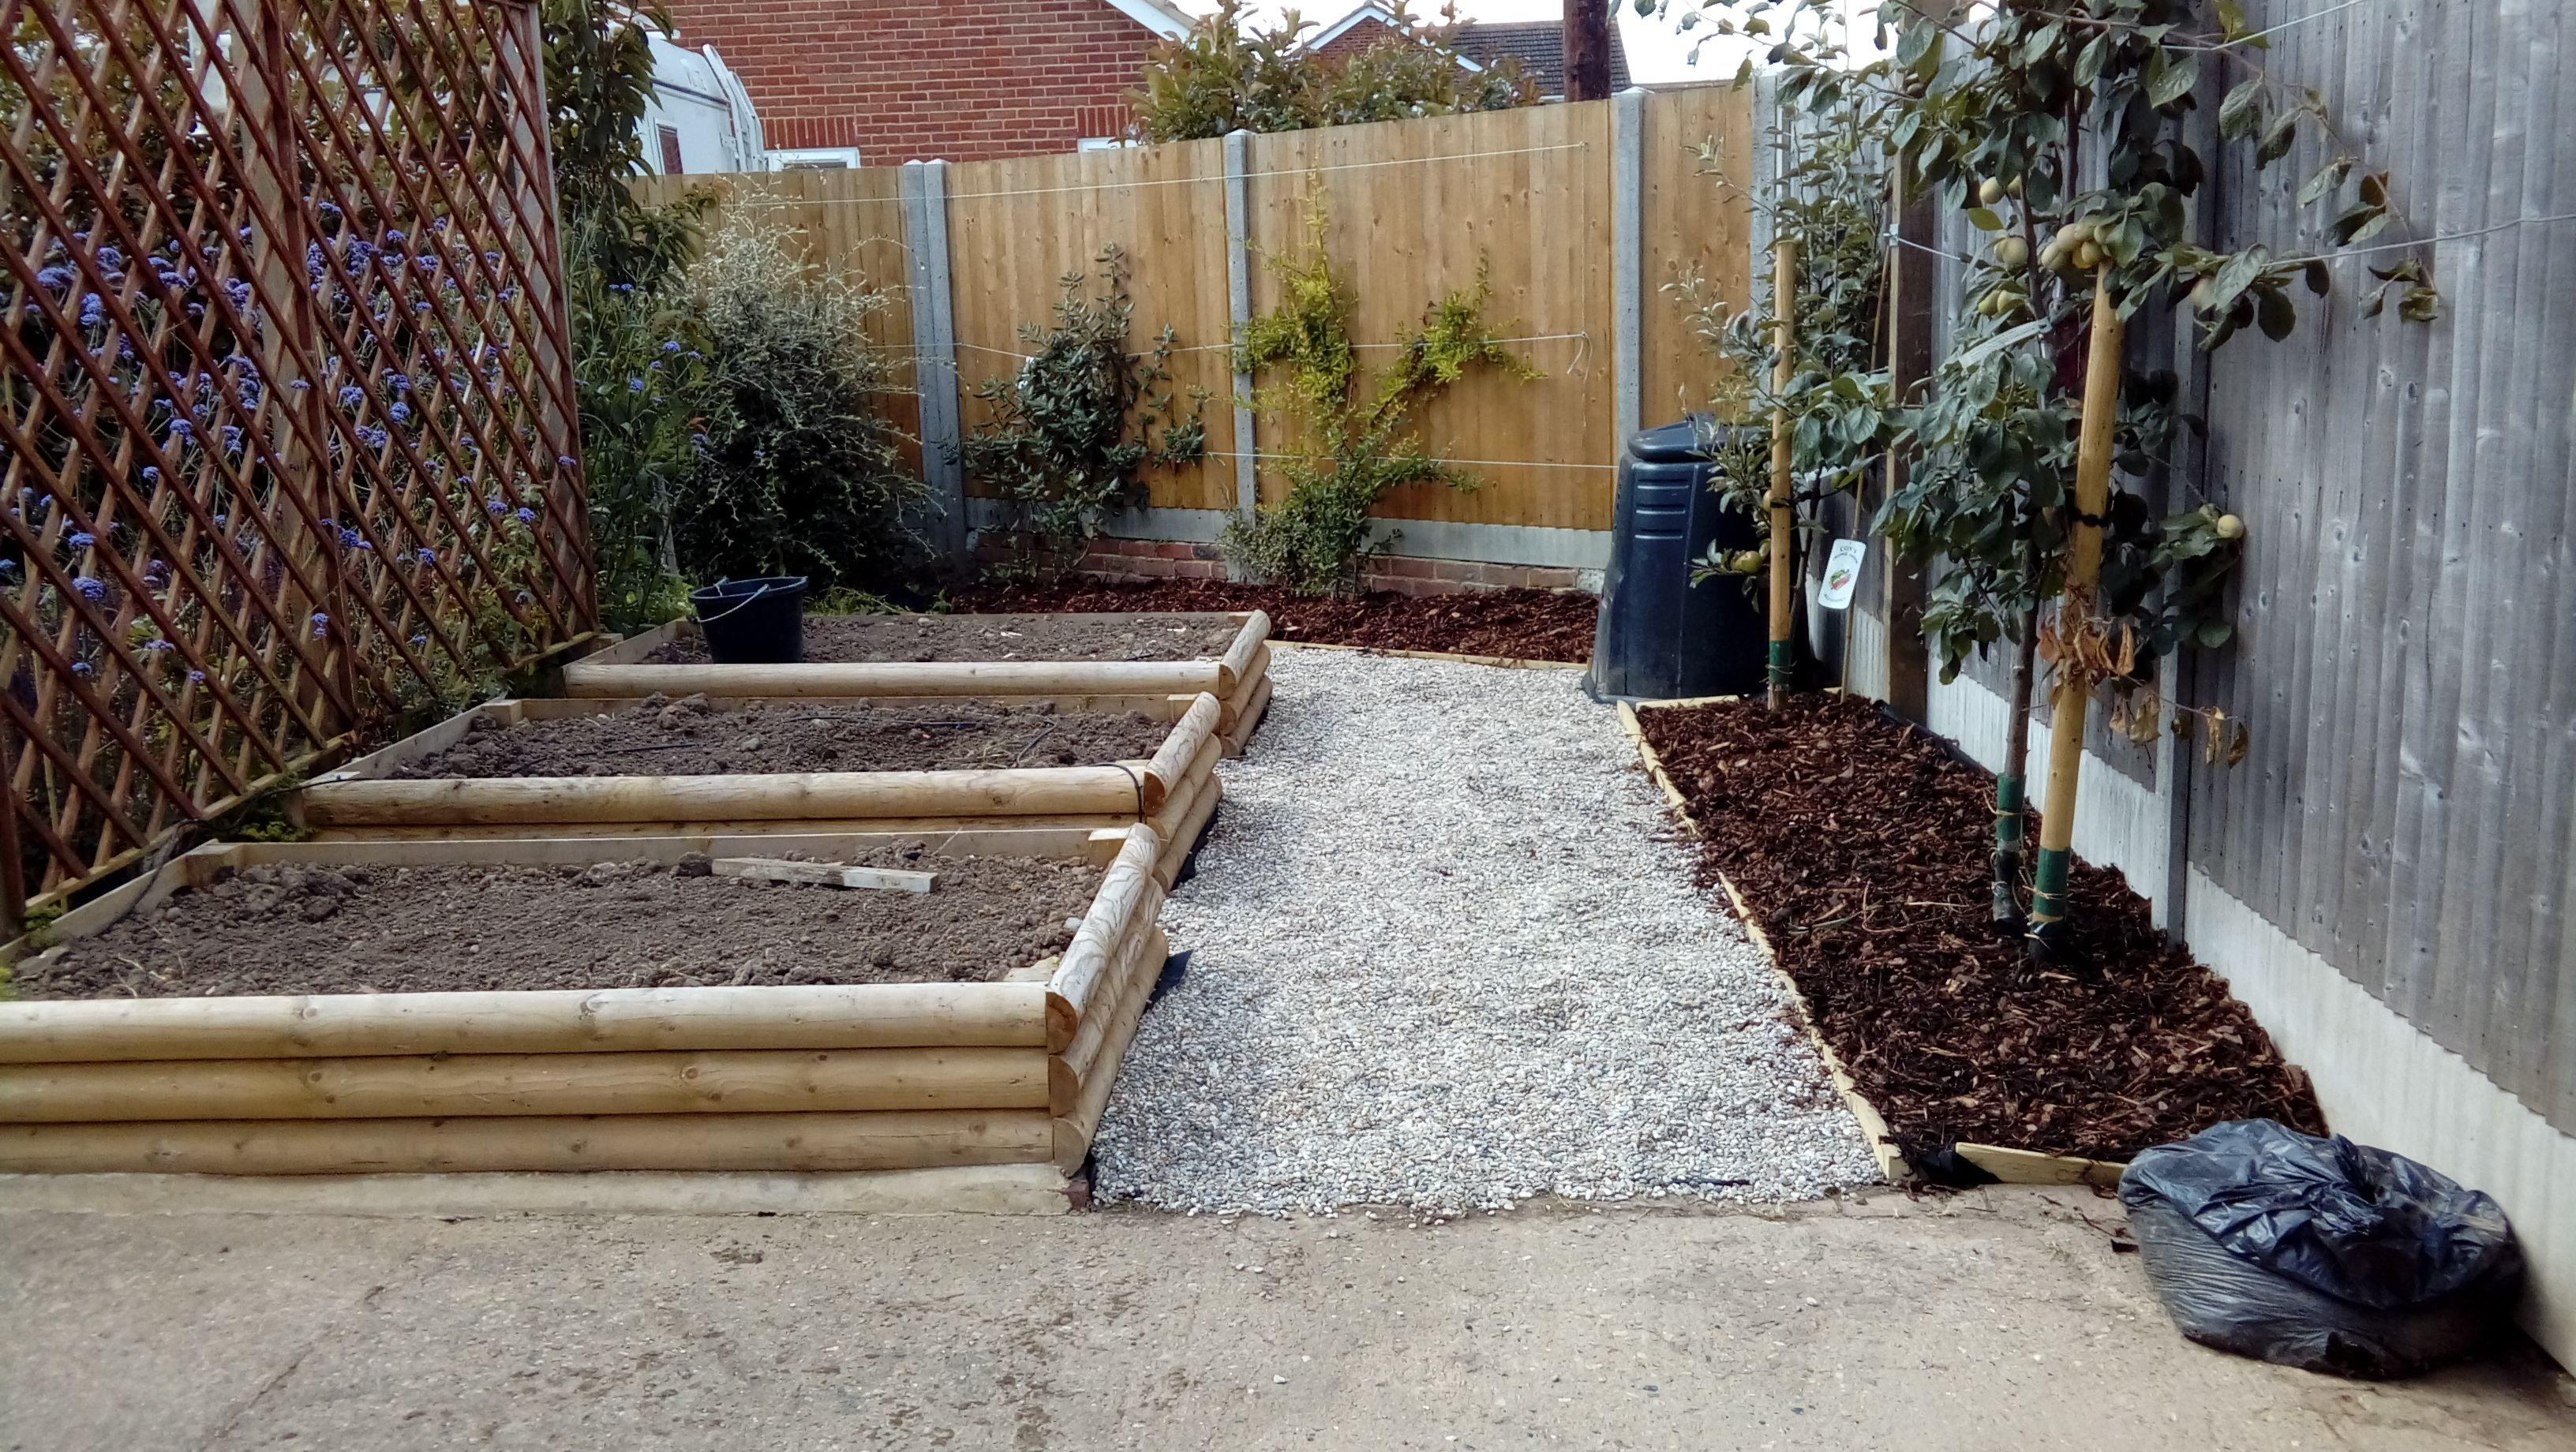 Garden bed with trees  Raised veg beds and espalier fruit trees to maximise the planting